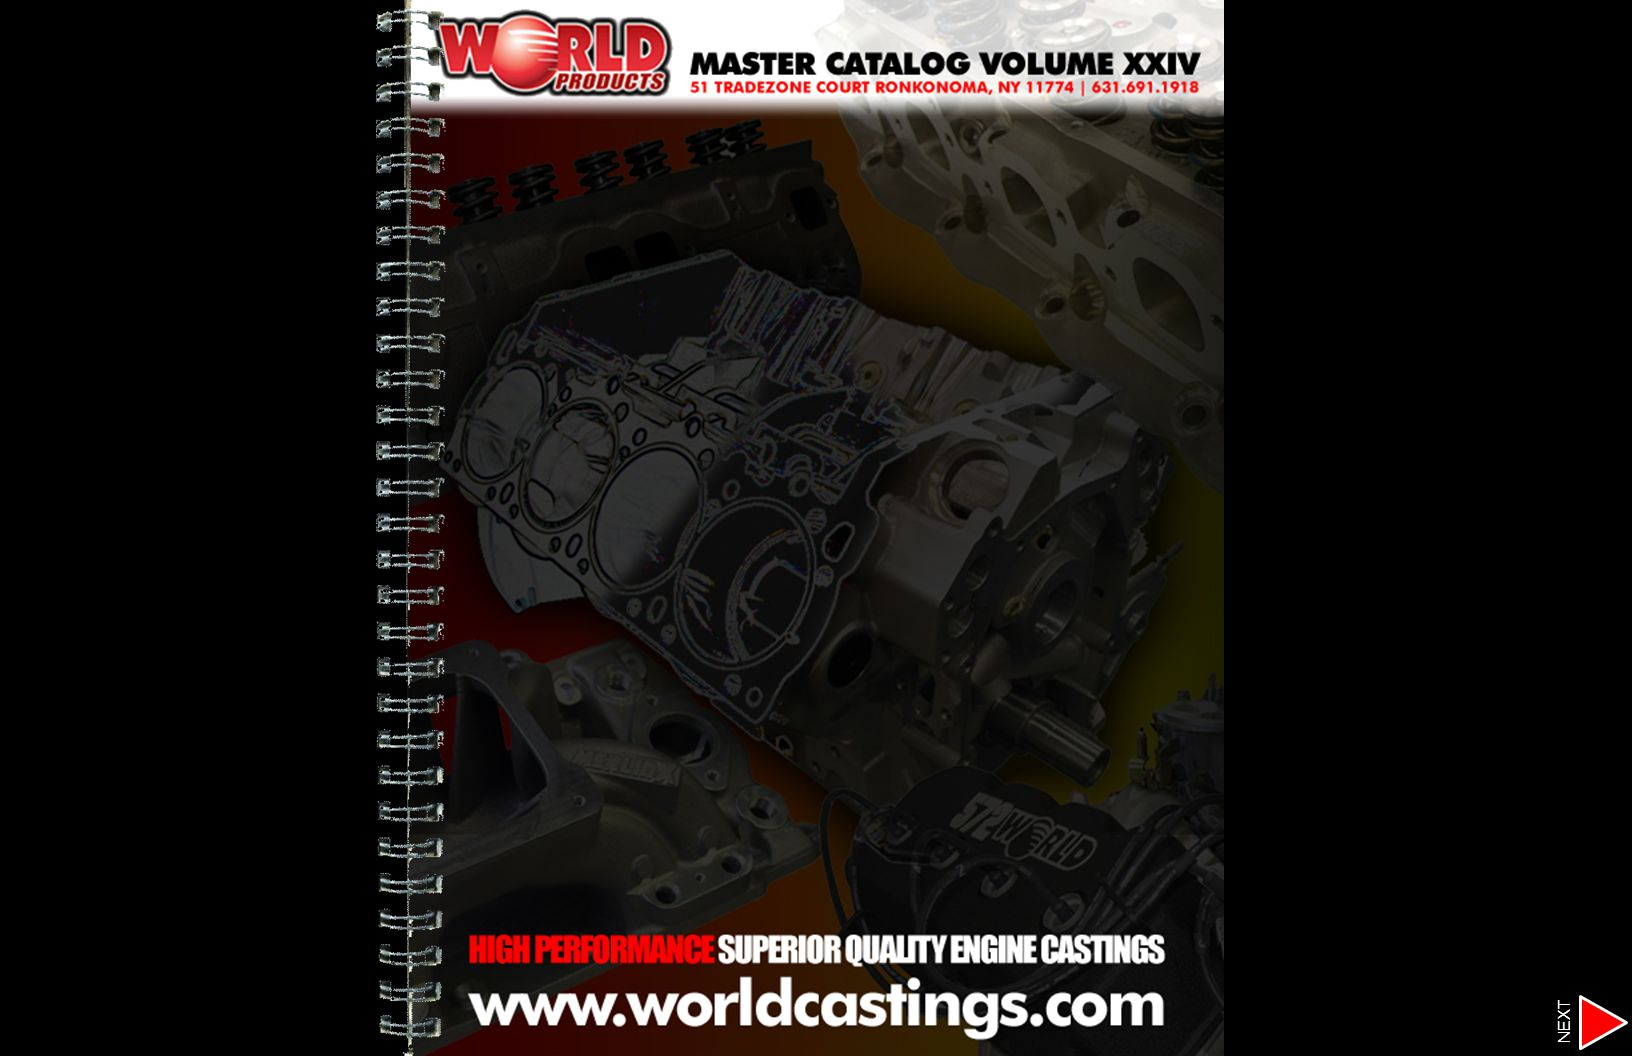 MERLIN Big Block Chevy OVAL & RECTANGULAR PORT IRON CYLINDER HEADS TECHNICAL SPECIFICATIONS Casting ID Numbers: WOR-043B (345cc) WOR-043D (320cc) WOR-043D (269cc) Material: High density cast iron Valve Seats: Intake (integral), exhaust (hardened) Valve Guides: Integral cast iron Spring Seats: Machined for 1.560 (can machine to 1.625 ) Valves: Manley stainless steel valves in assemblies (inconel exhaust valves on marine applications) Valve Diameter: 2.300 intake, 1.880 exhaust (11/32 stem) Guide Plates: Stock (for best fit use World #702354-8) Rocker Arm Studs: Screw-in style Rocker Arms: Standard Intake Runner: 269cc,320cc or 345cc - standard port location Exhaust Ports: 137cc, standard location Combustion Chamber: 119cc Spark Plug: 14mm 5/8 .460 reach tapered seat Valve Job: Multi-angle intake and radiused exhaust Valve Cover Rail: Raised Valve Angle: Stock 24° Accessory Bolt Holes: Stock Chamber Design: Open Head Flow @.700 Lift 370 intake, 261 exhaust (Super Flow 1020) 389 intake, 275 exhaust (Super Flow 600) All heads flowed with a standard.750 intake plate, without exhaust tube, & 28 of water.